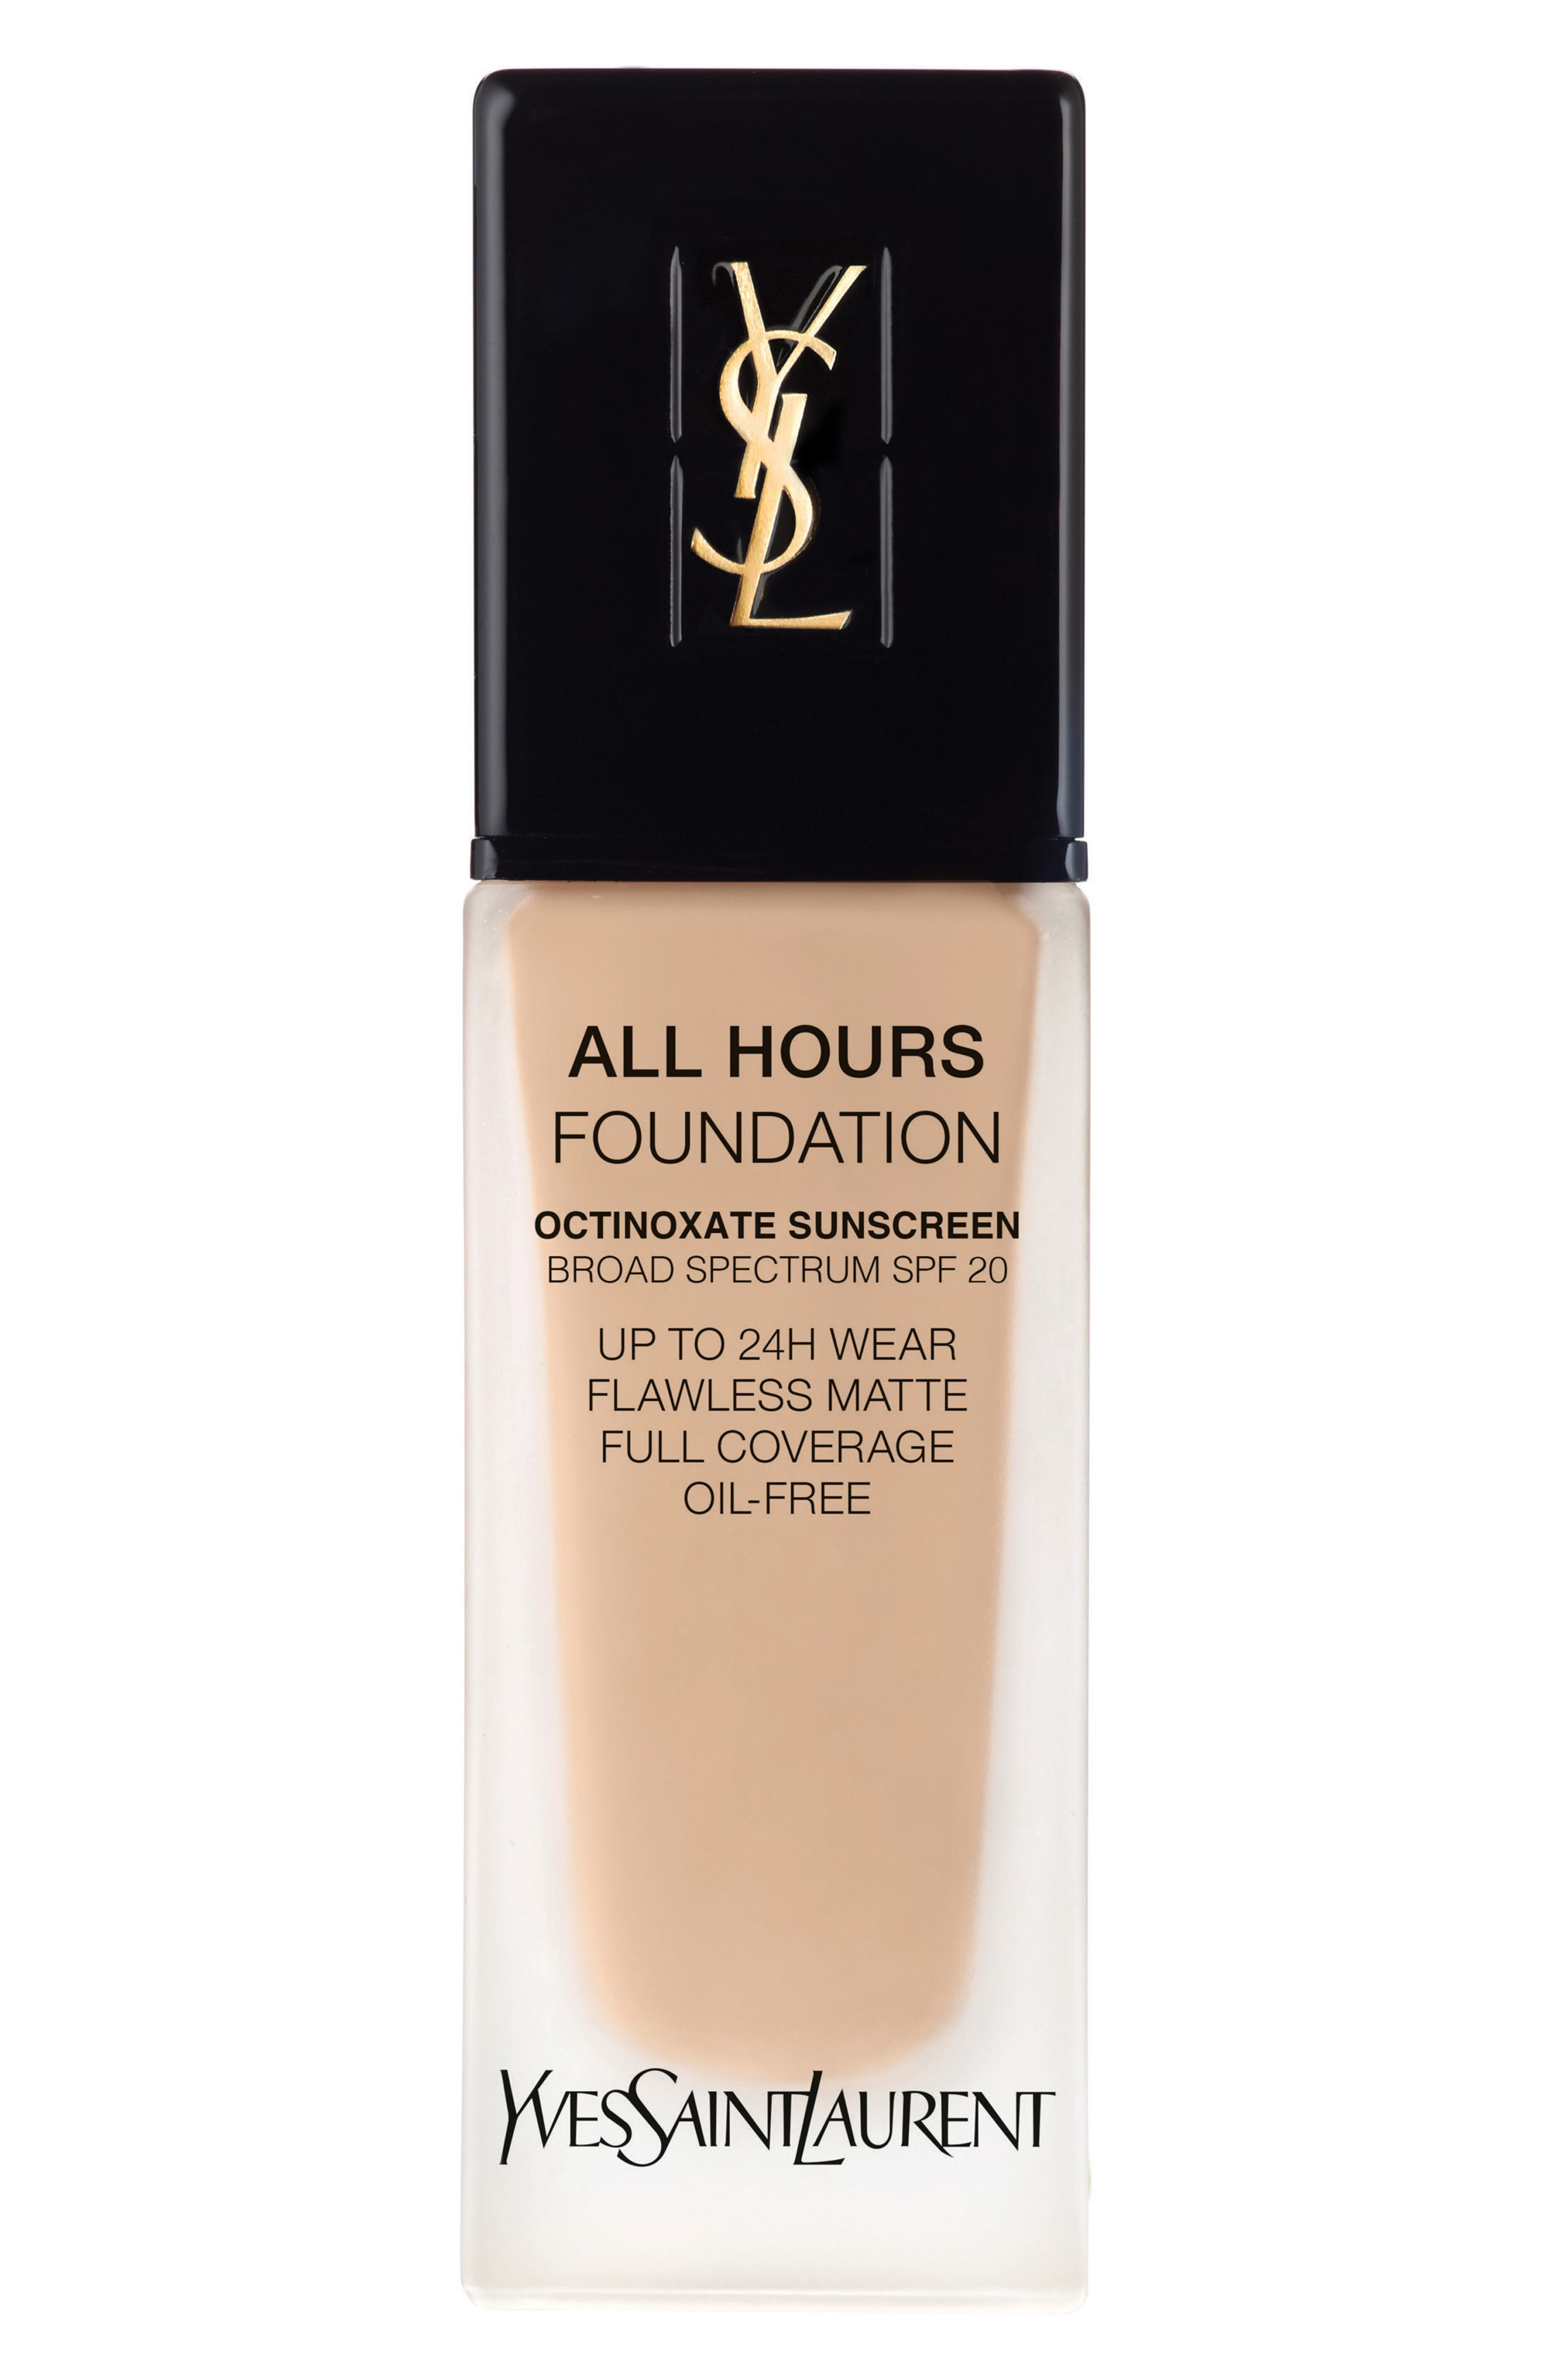 Yves Saint Laurent All Hours Full Coverage Matte Foundation Spf 20 - Bd20 Warm Ivory